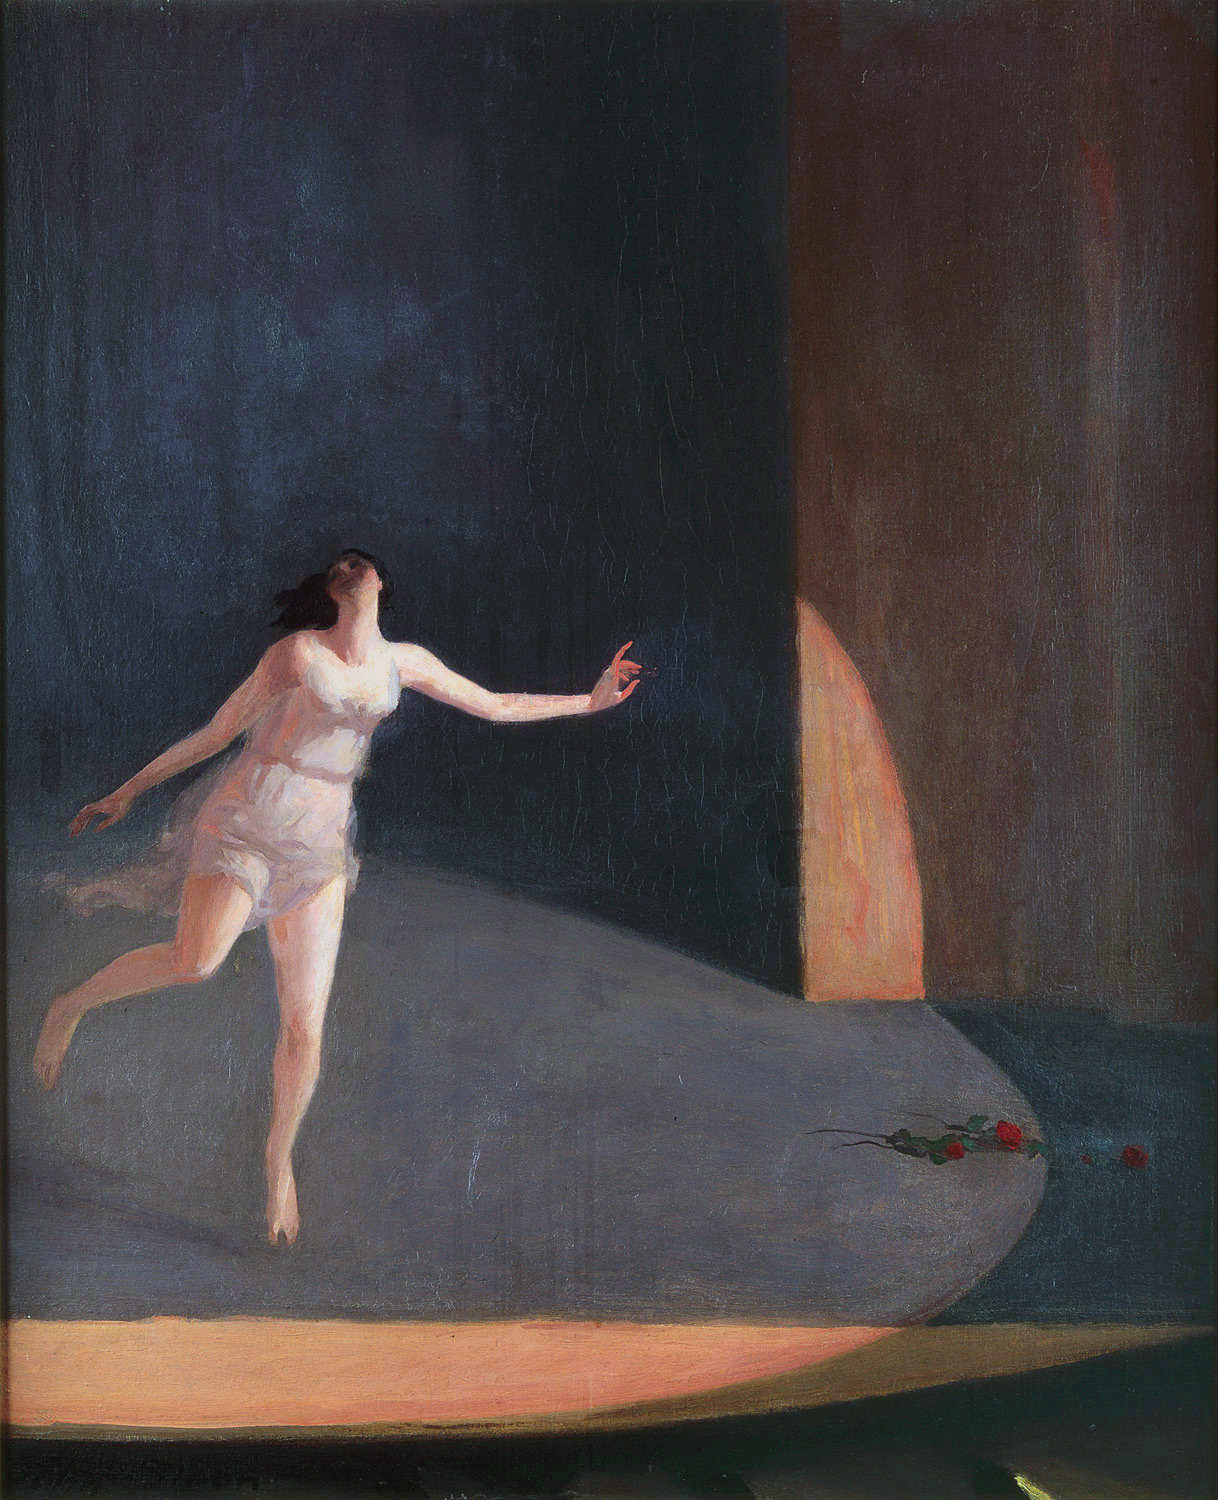 isadora-duncan-1911-john-sloan-american-1871-1951-oil-on-canvas-milwaukee-art-museum